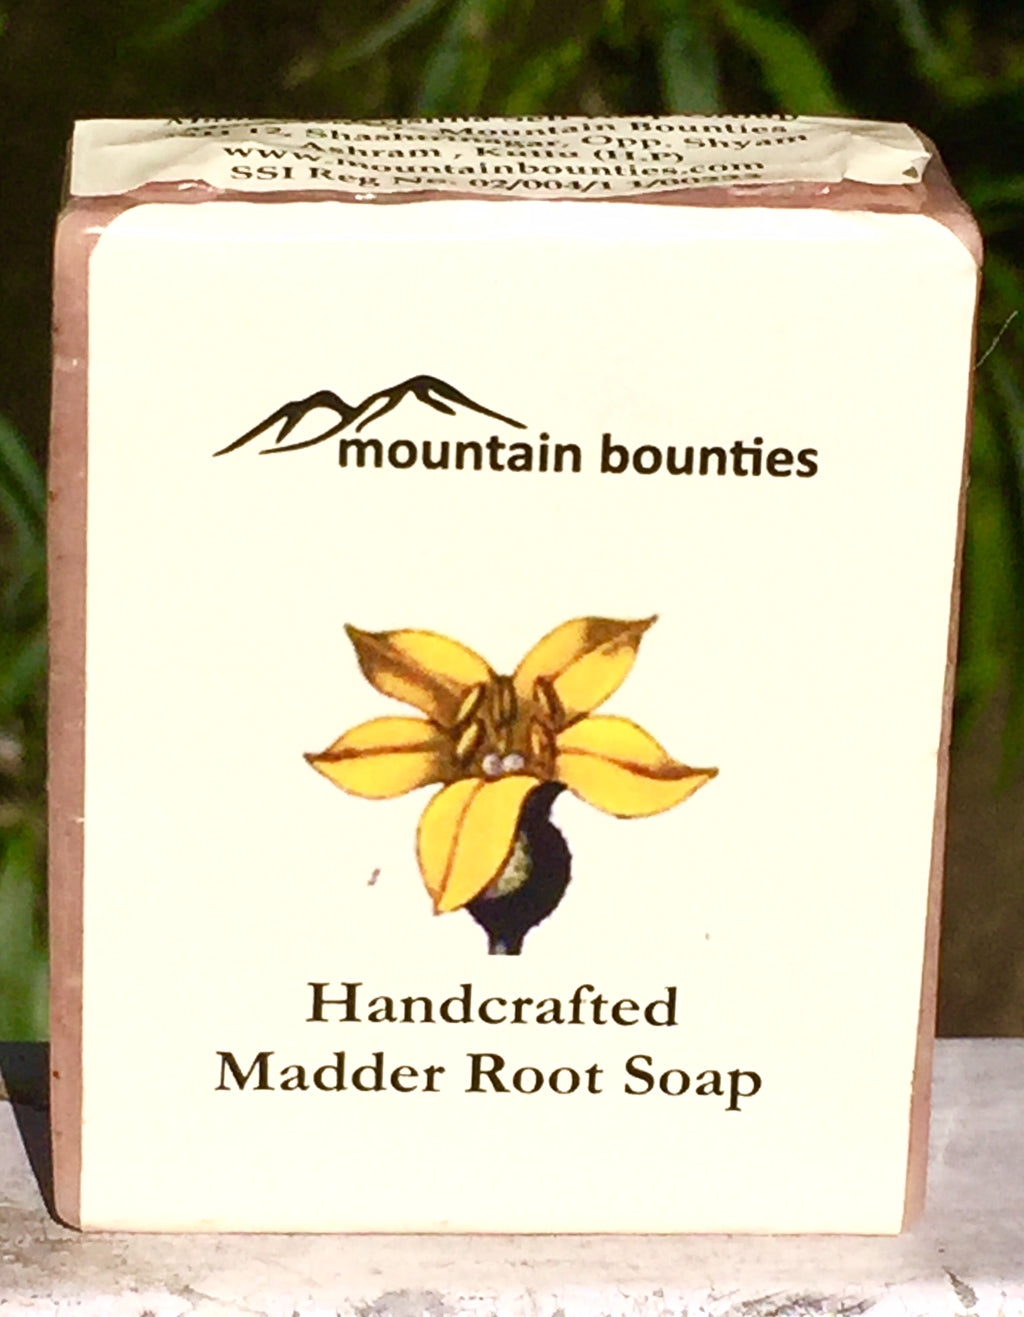 Handcrafted Madder Root Soap